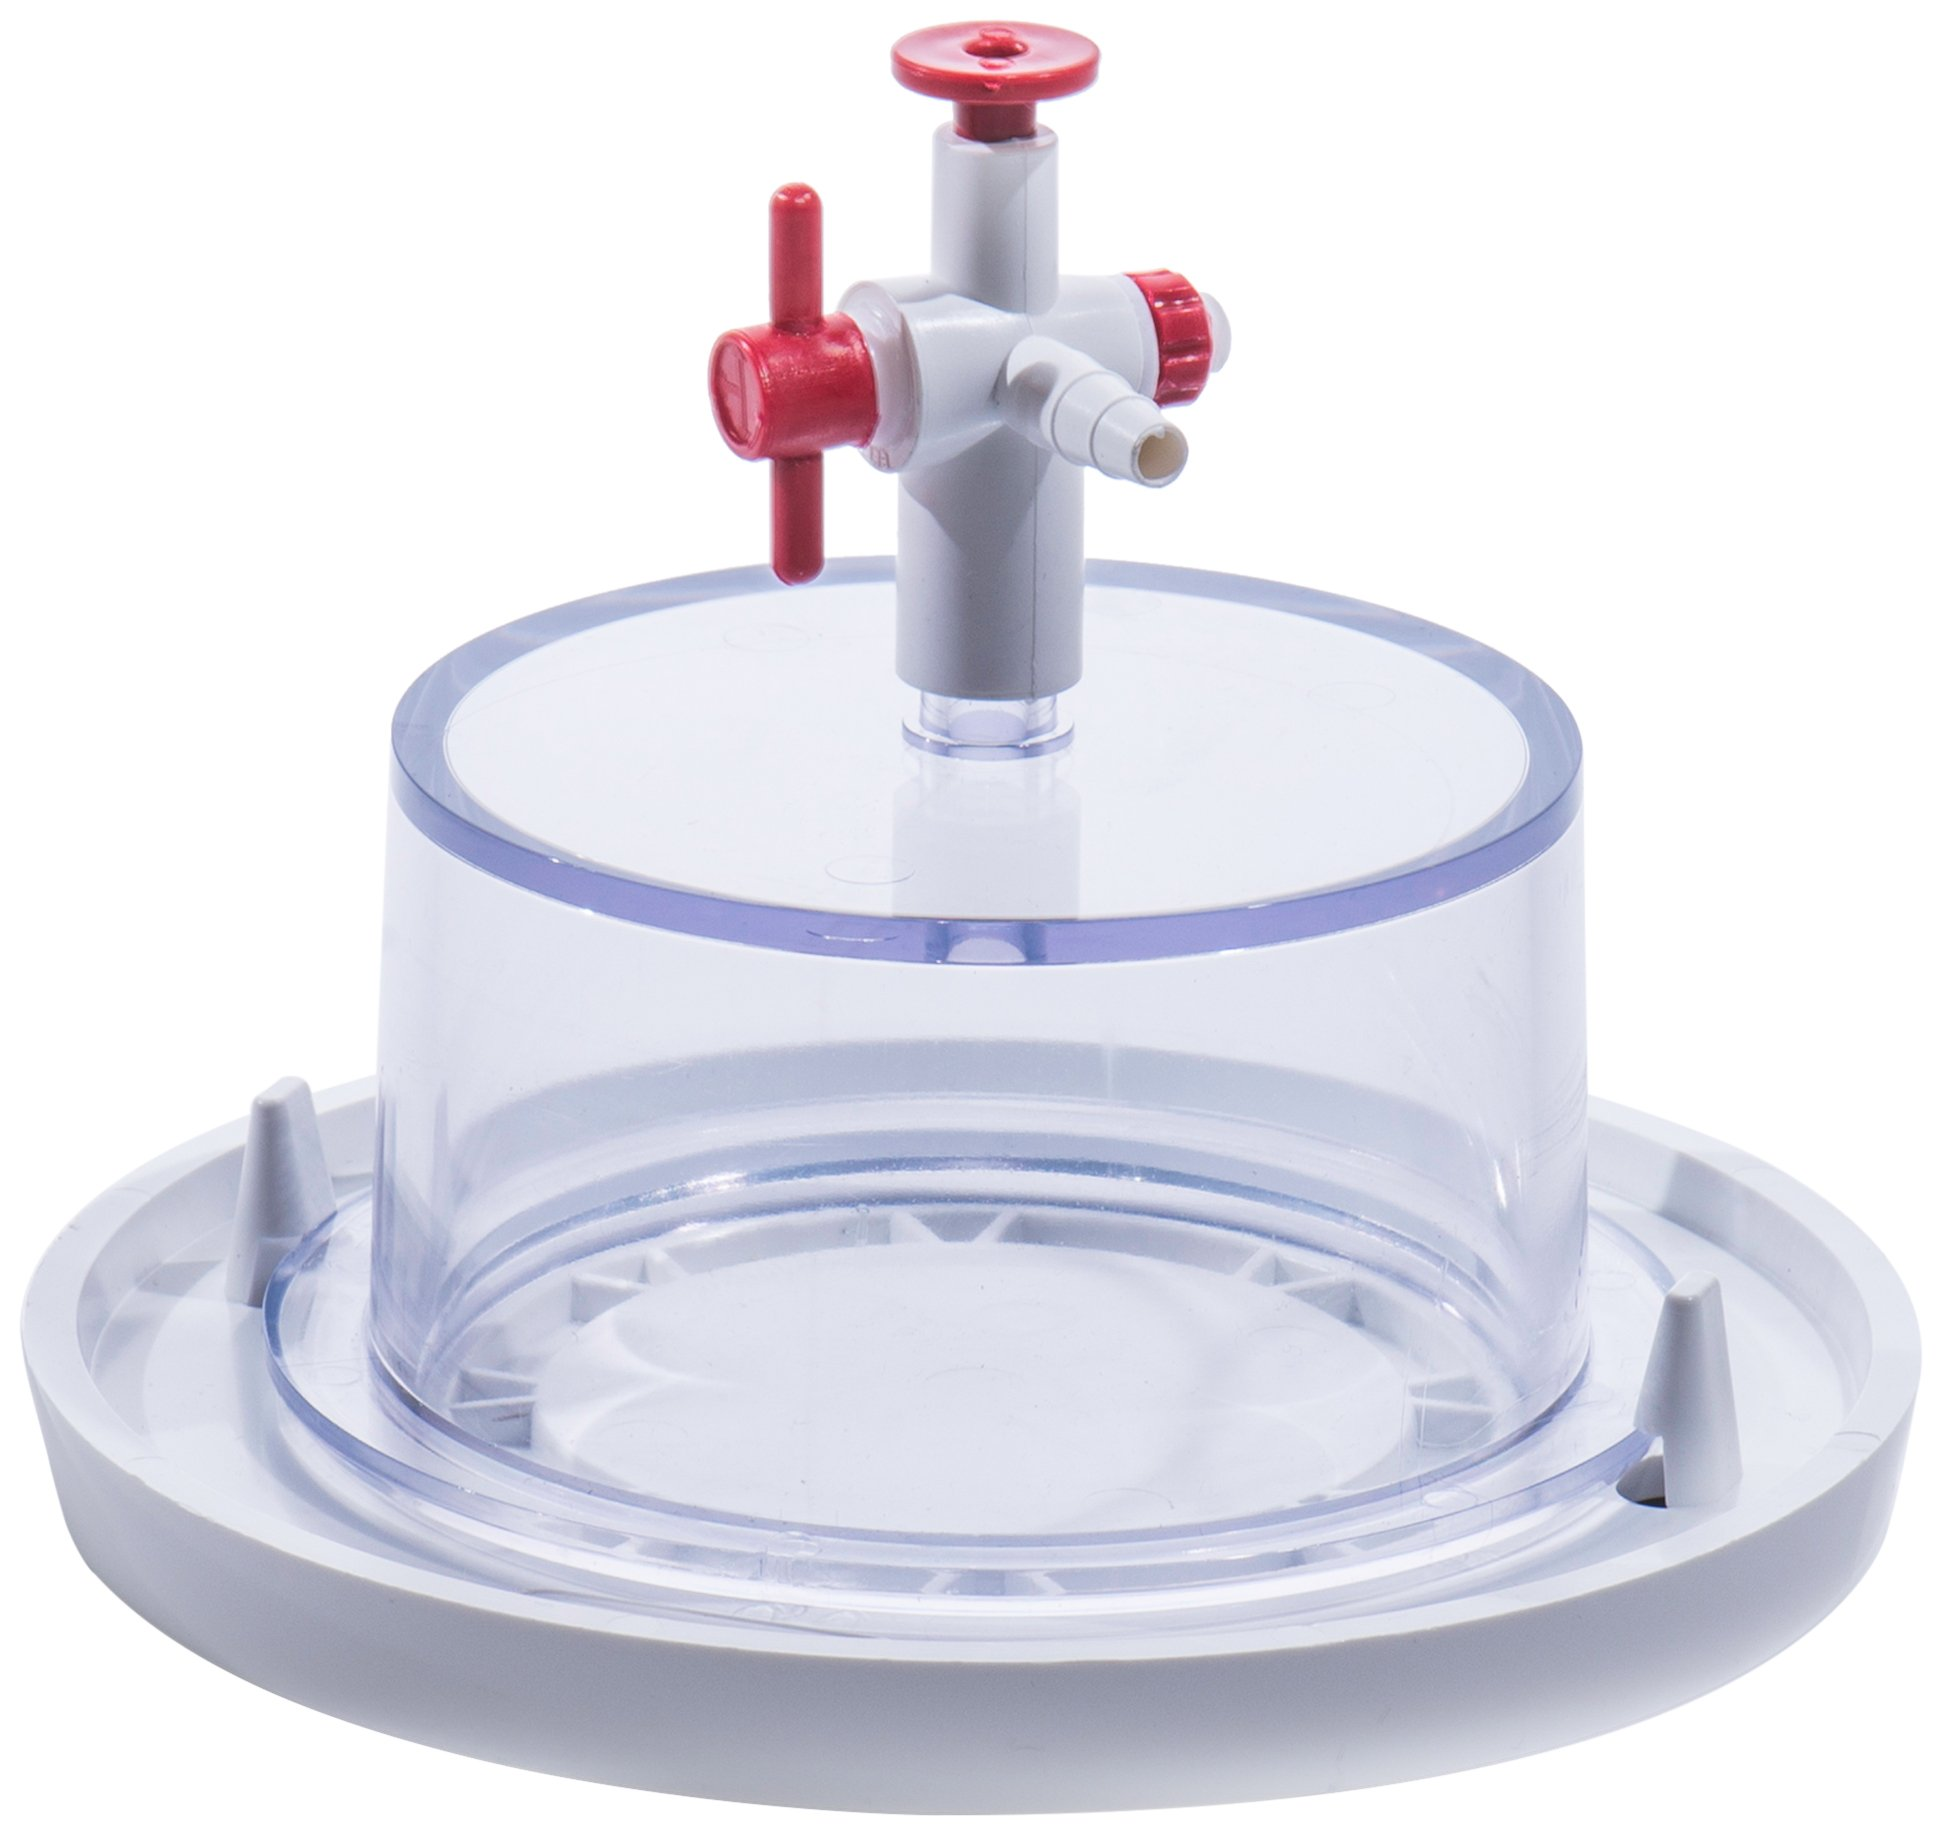 Bel-Art Clear Polycarbonate Mini Vacuum Desiccator with White Polypropylene Bottom; 0.02 cu. ft. (F41099-0000)